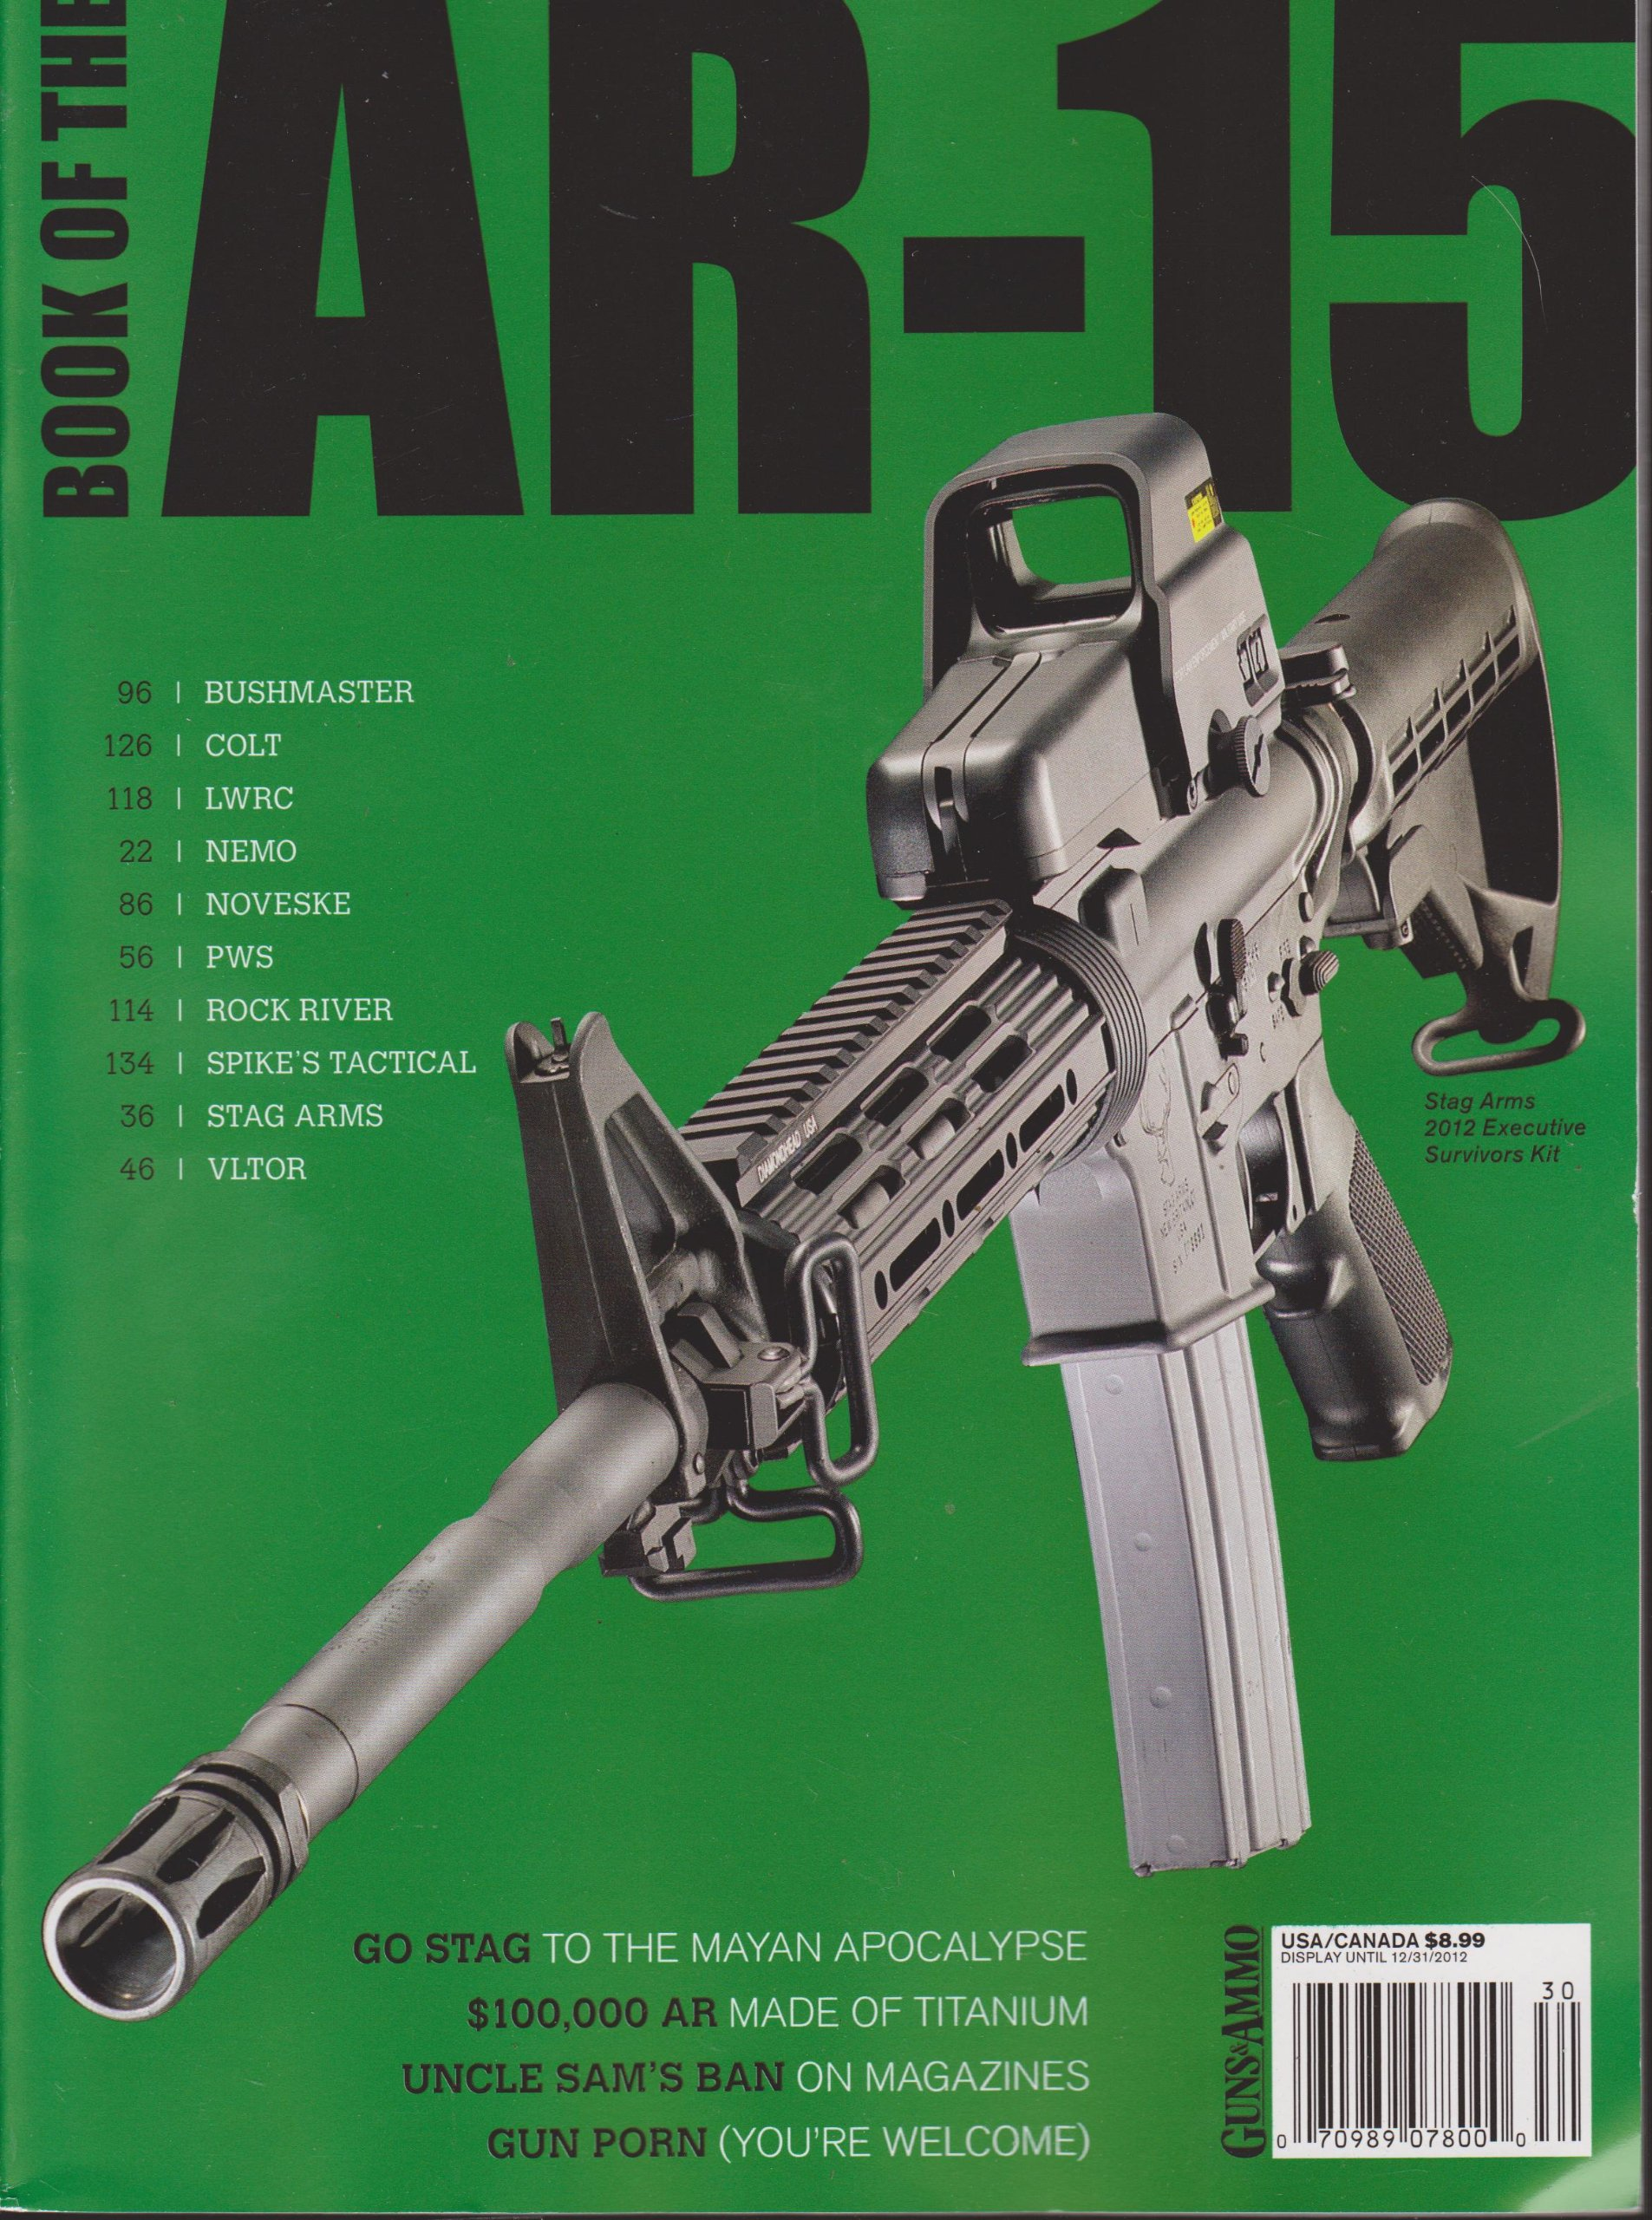 Book of the AR-15 Fall 2012: Amazon com: Books